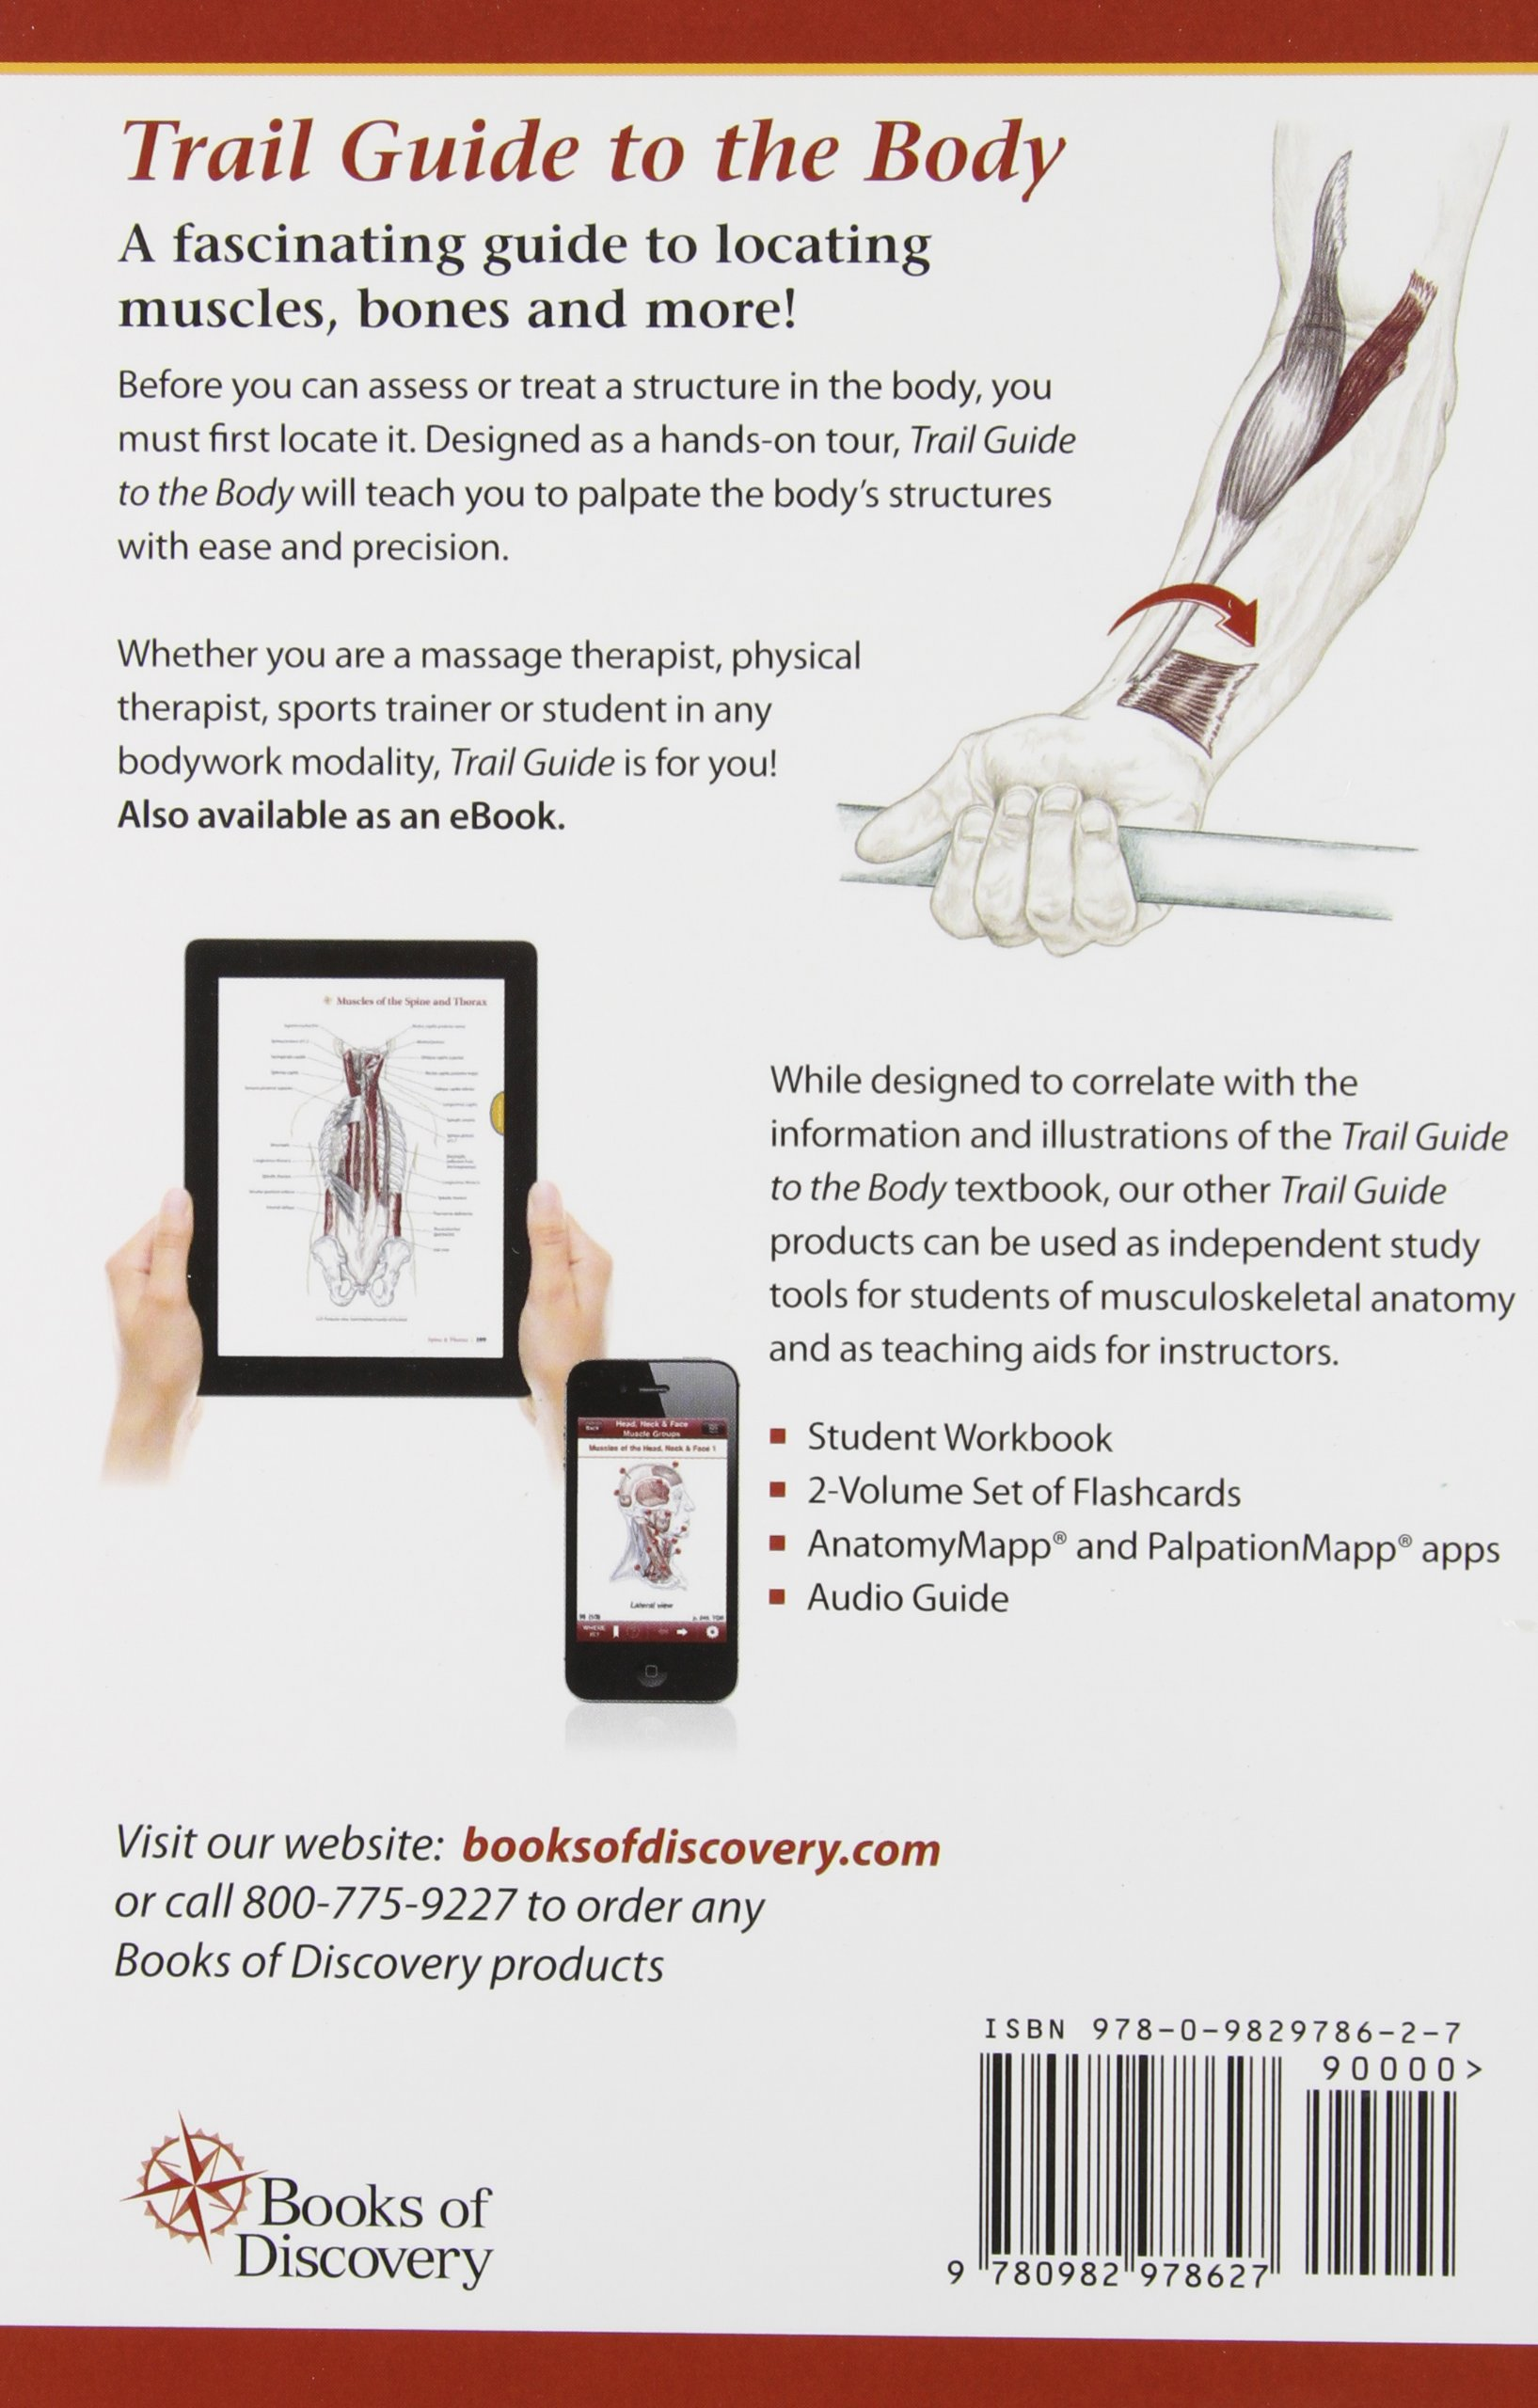 Trail guide to the bodys quick reference to trigger points livros trail guide to the bodys quick reference to trigger points livros na amazon brasil 9780982978627 fandeluxe Choice Image